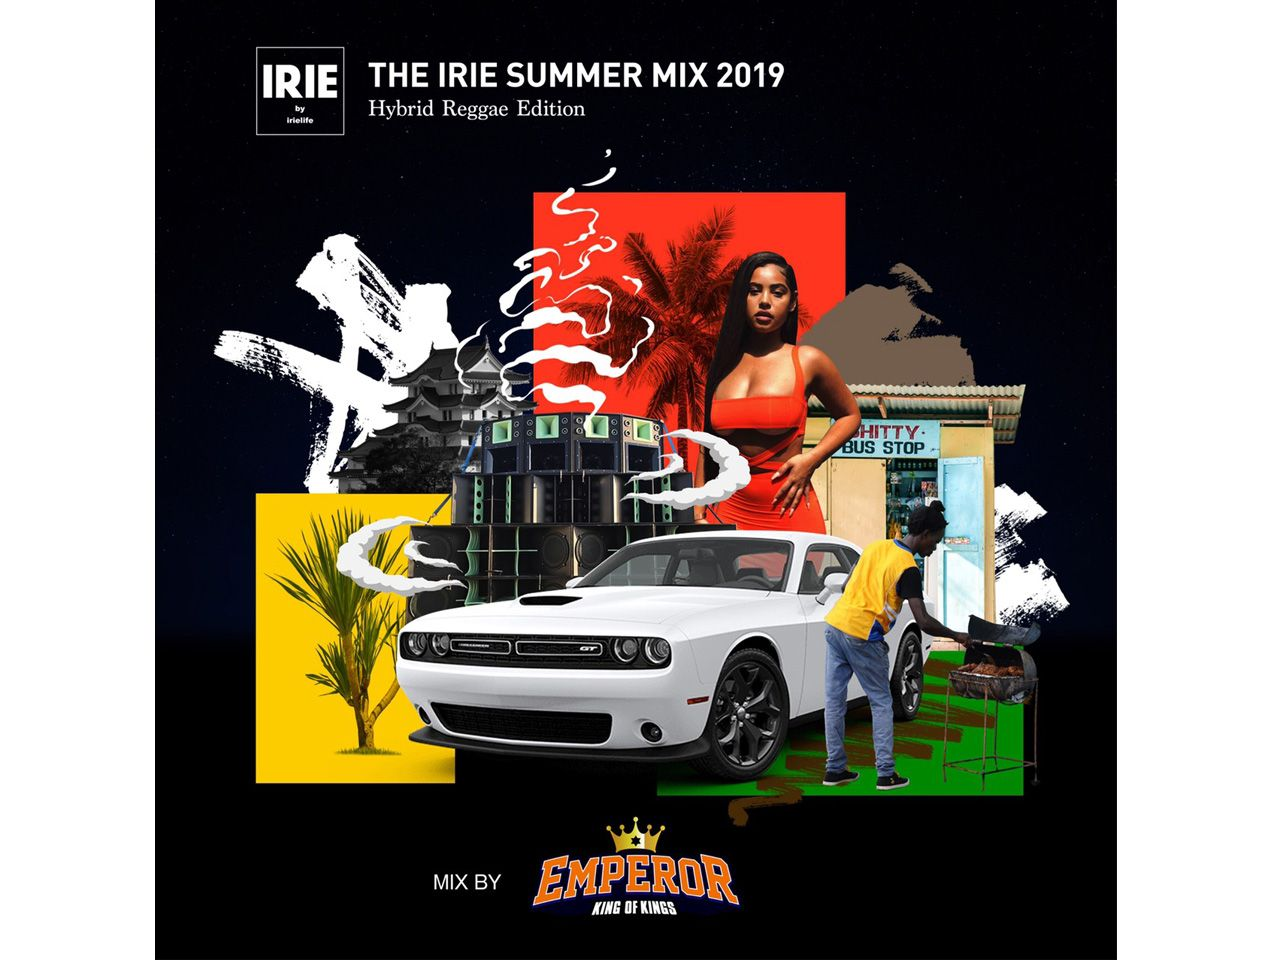 IRIE SUMMER MIX 2019 - Hybrid Reggae Edition -  EMPEROR